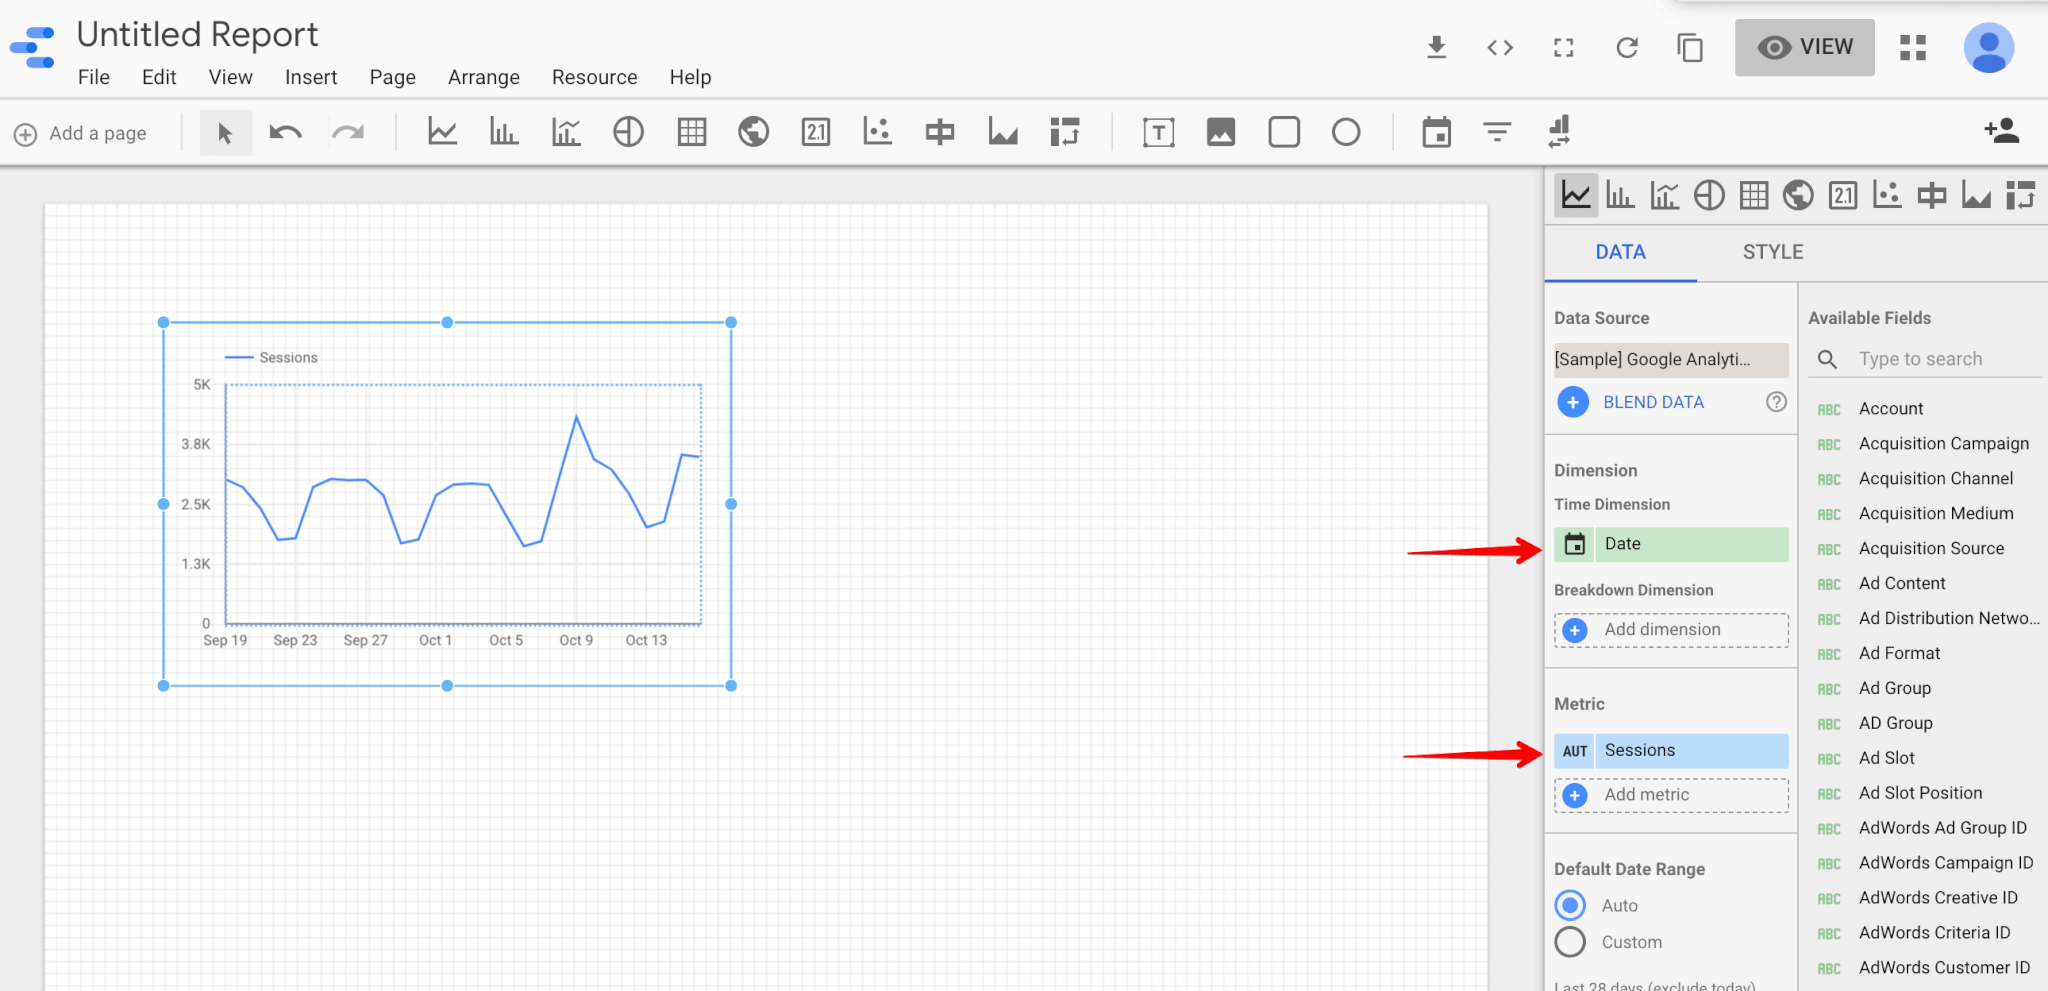 Metrics and dimensions in Google data studio